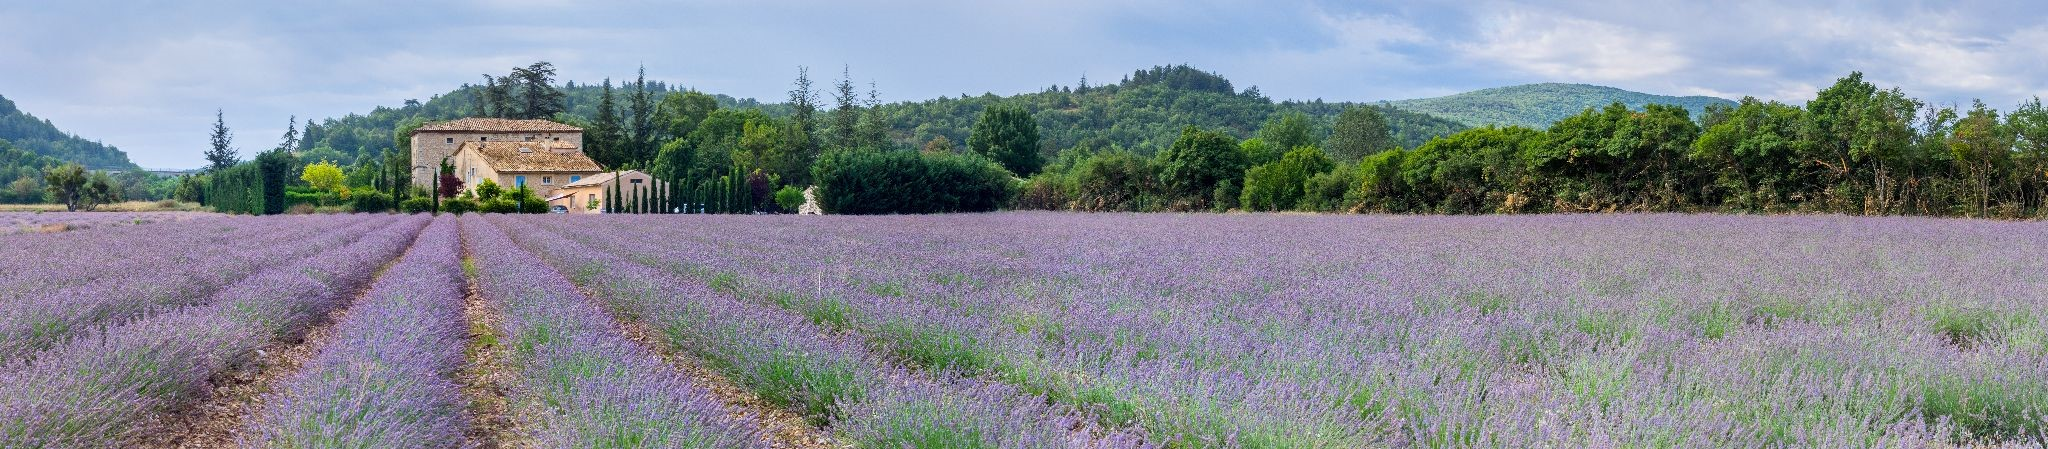 A countryside field of lavender flowers with French cottage farmhouse in the distance.